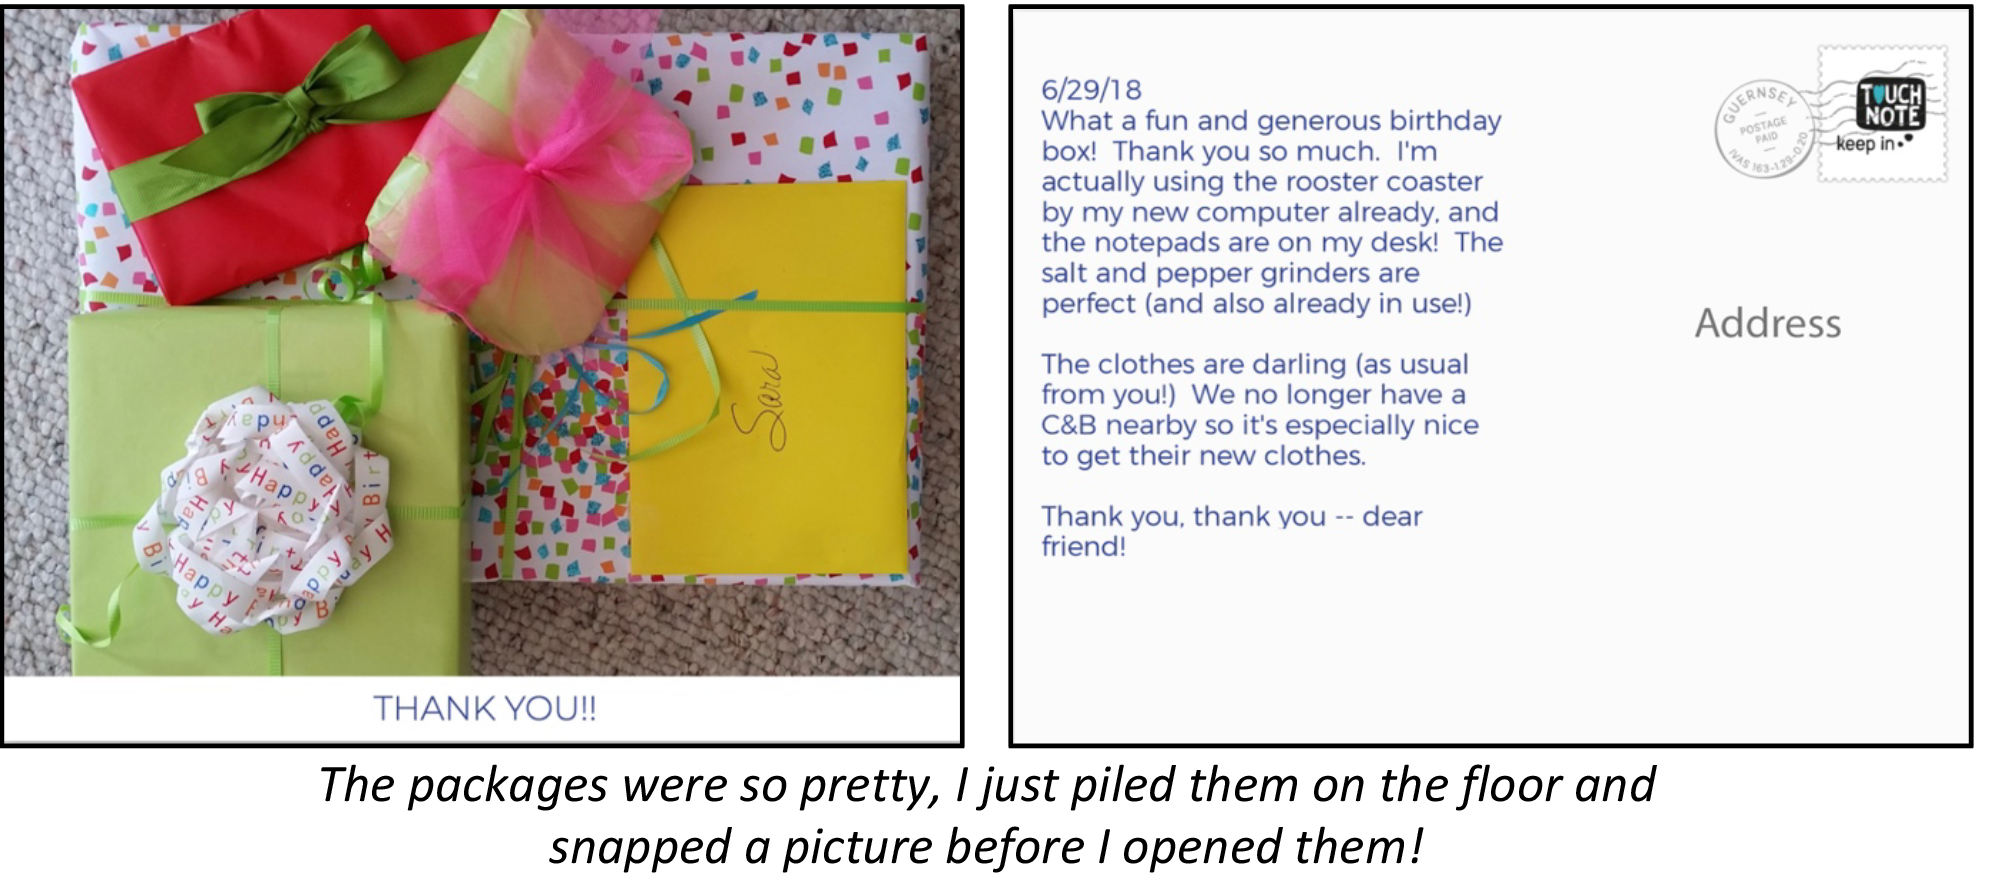 The image shows a photo of wrapped packages for the front of the postcard and a picture of text and address space for the back of the postcard.